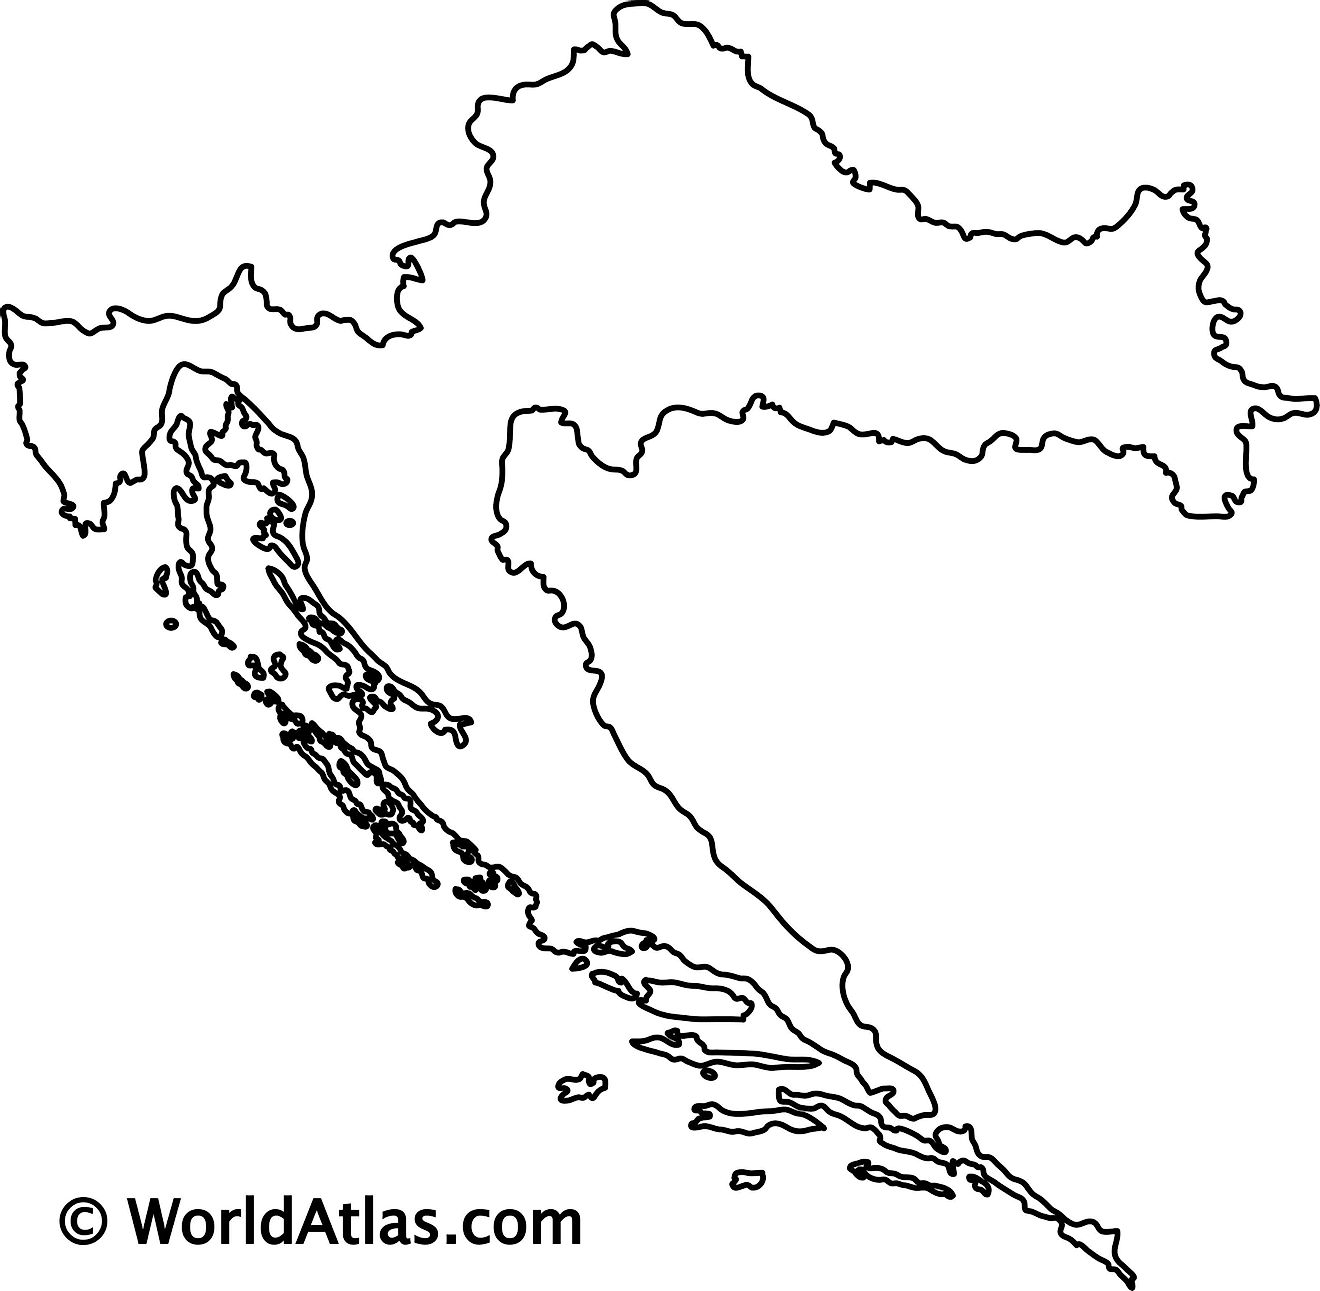 Blank Outline Map of Croatia